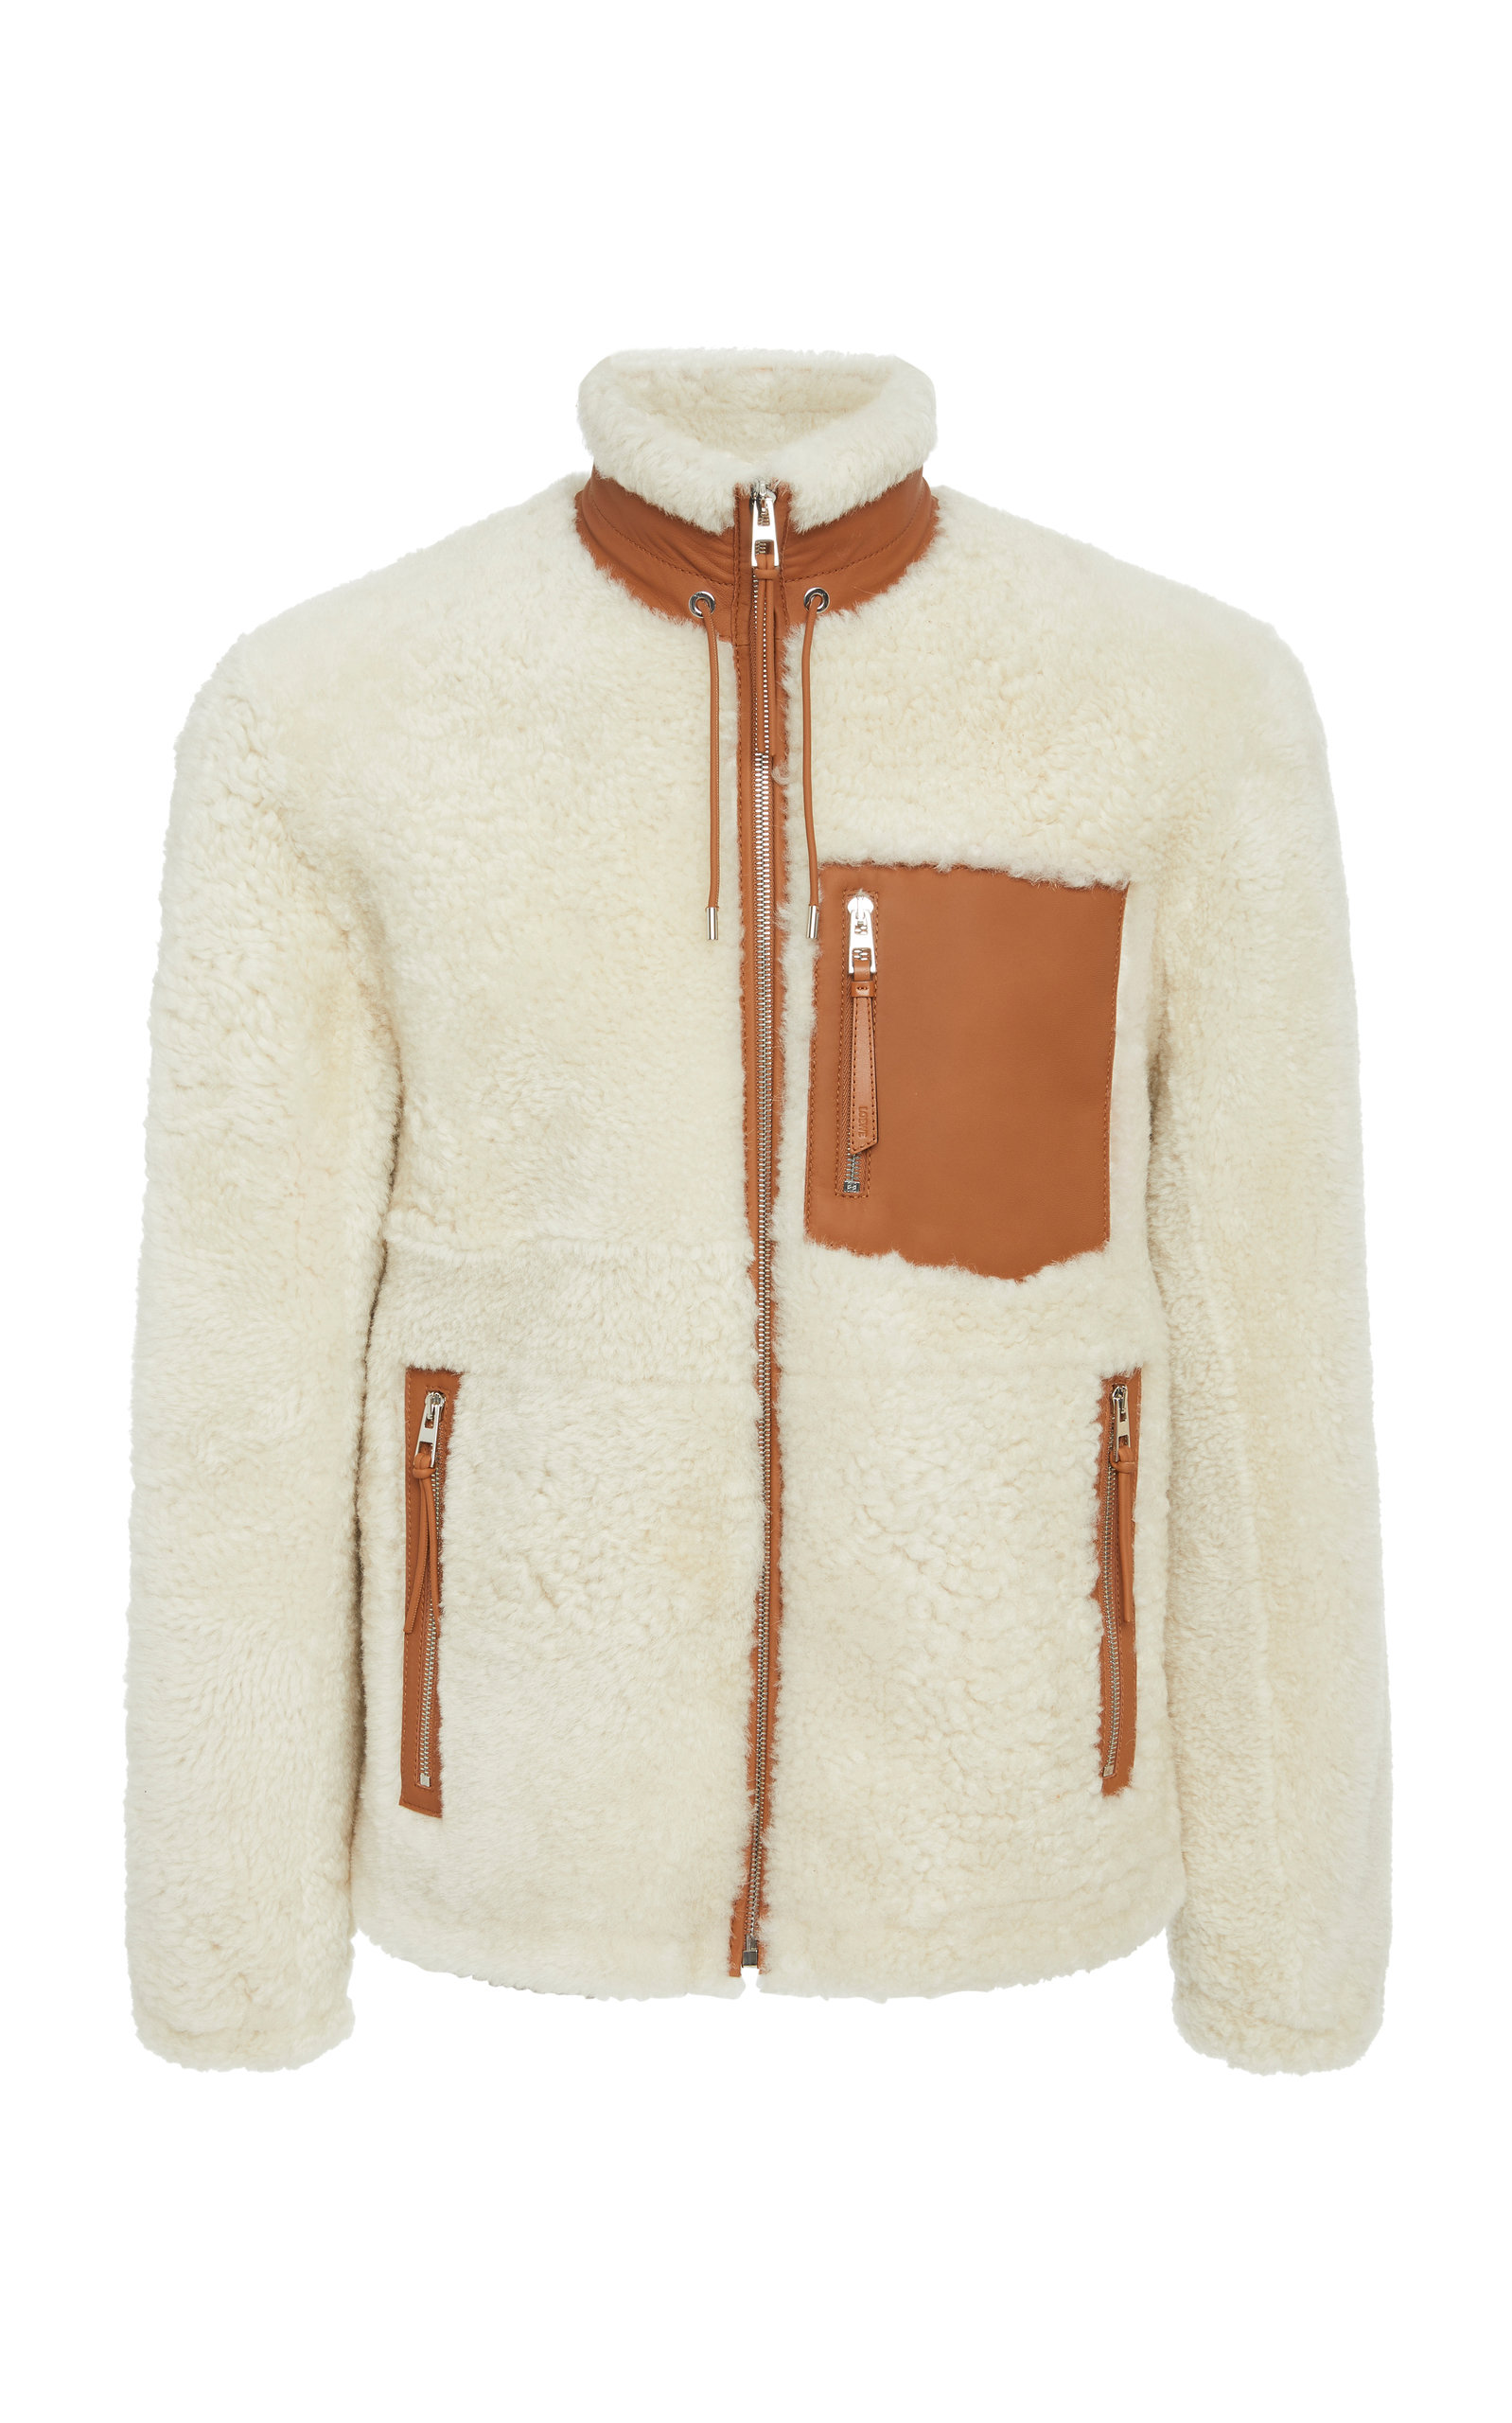 00b43cc263ca Leather-Trimmed Shearling Jacket by Loewe